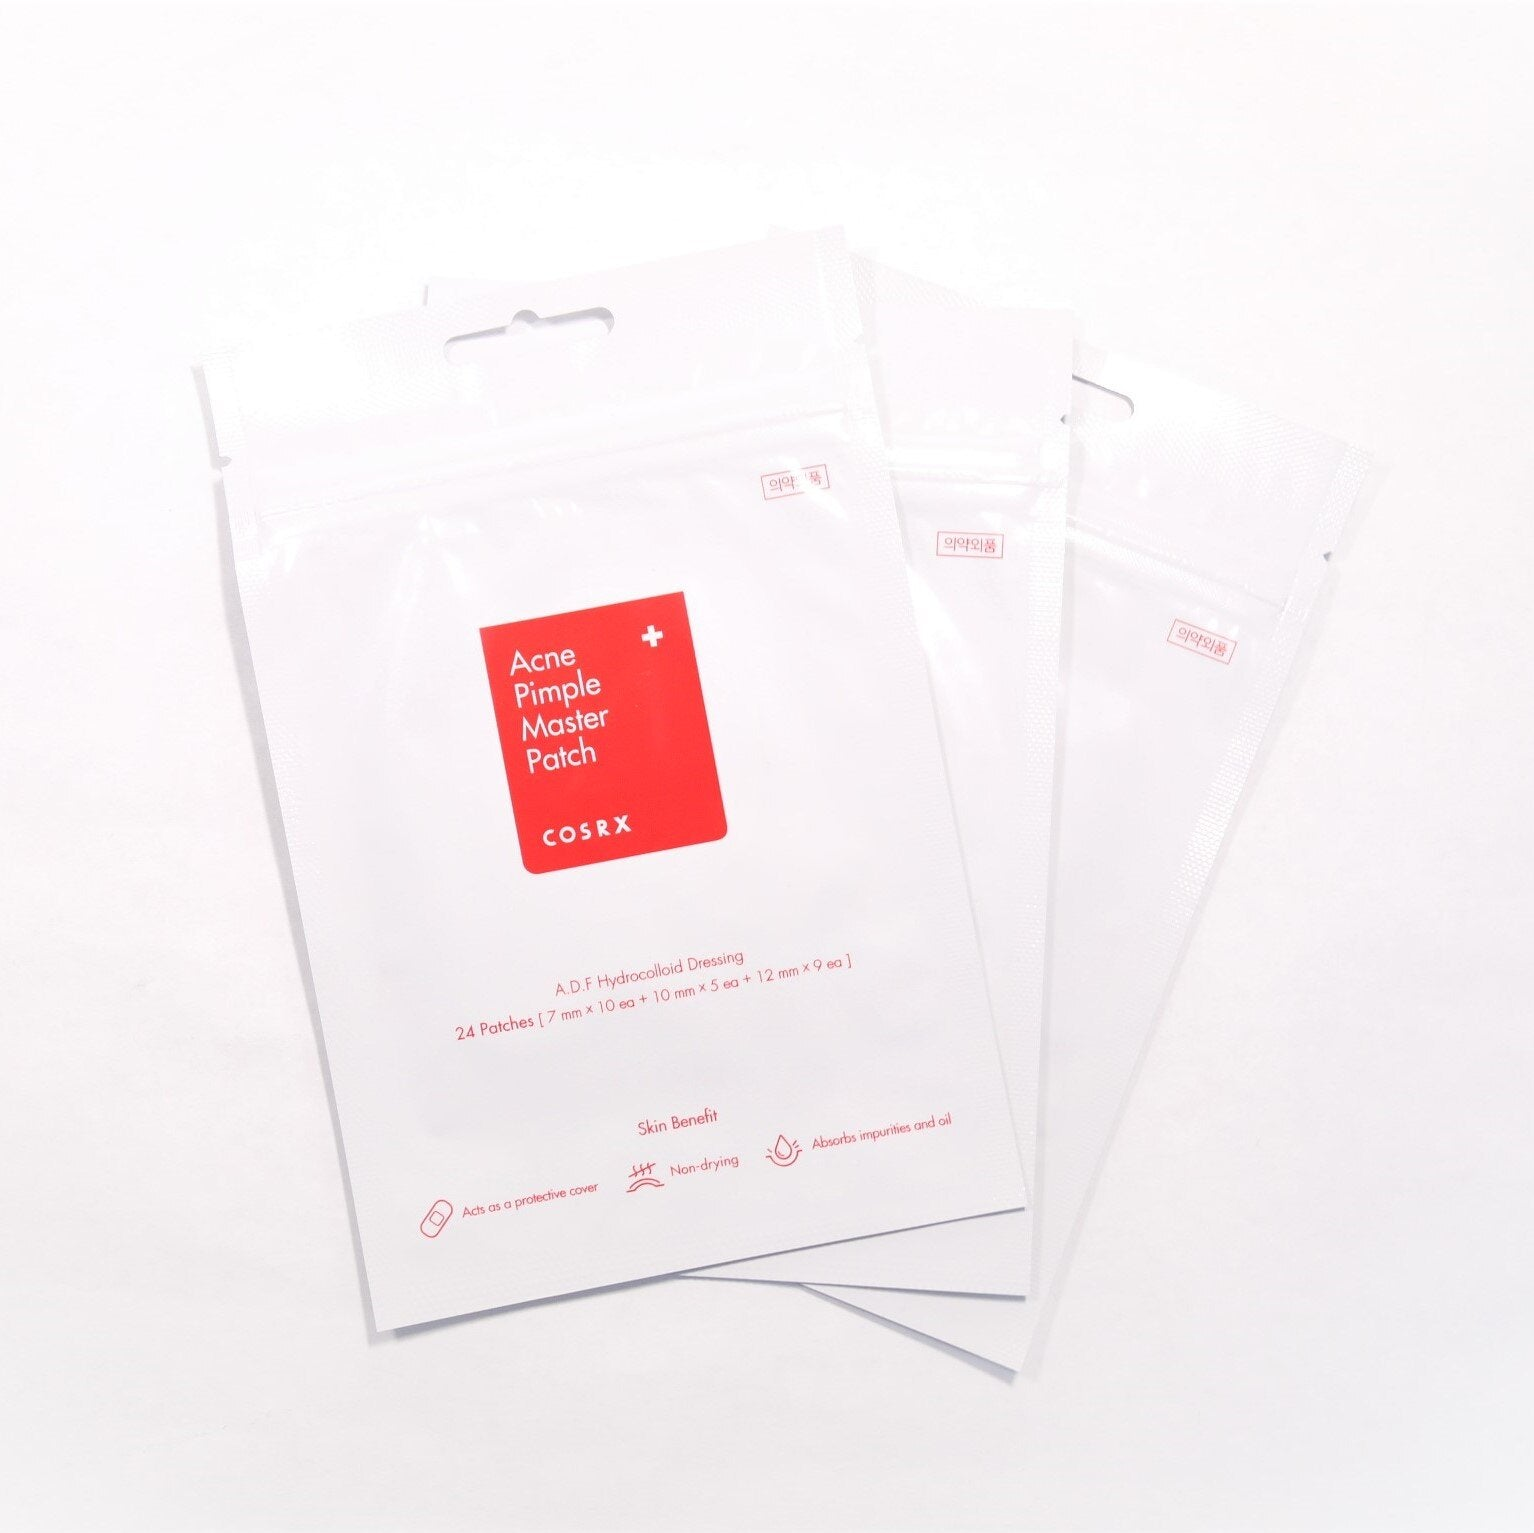 COSRX - Acne Pimple Master Patch 24 Patches (1 sheet)